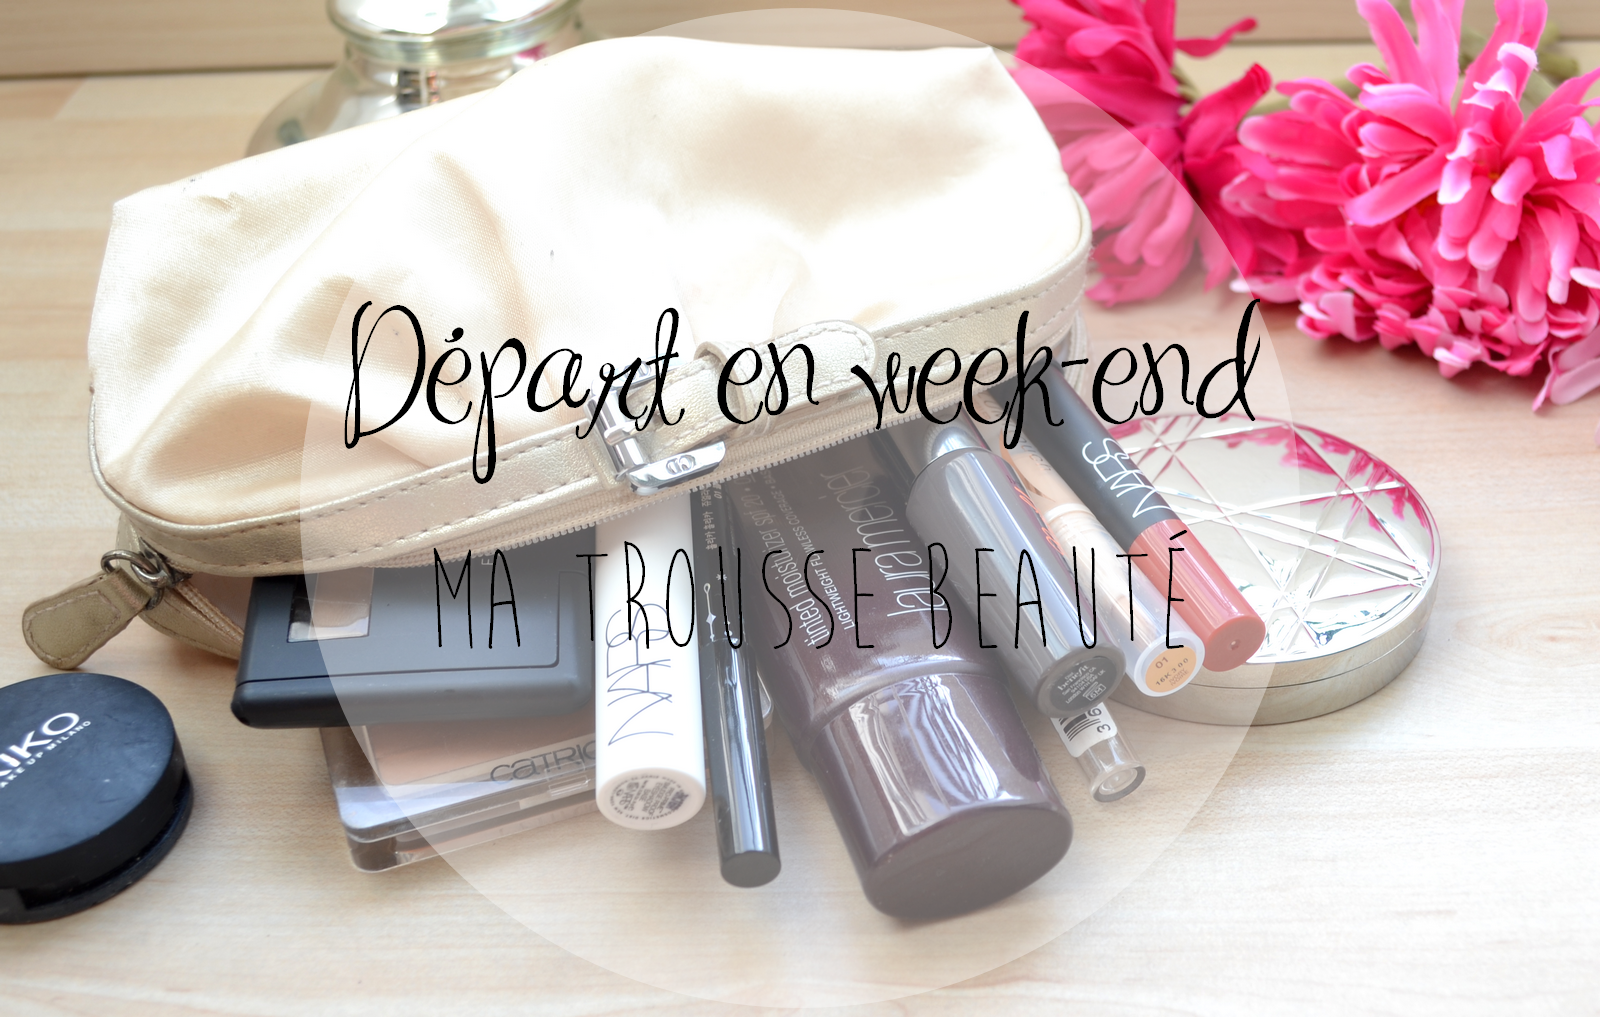 http://www.dreamingsmoothly.com/2014/04/depart-en-week-end-ma-trousse-beaute.html